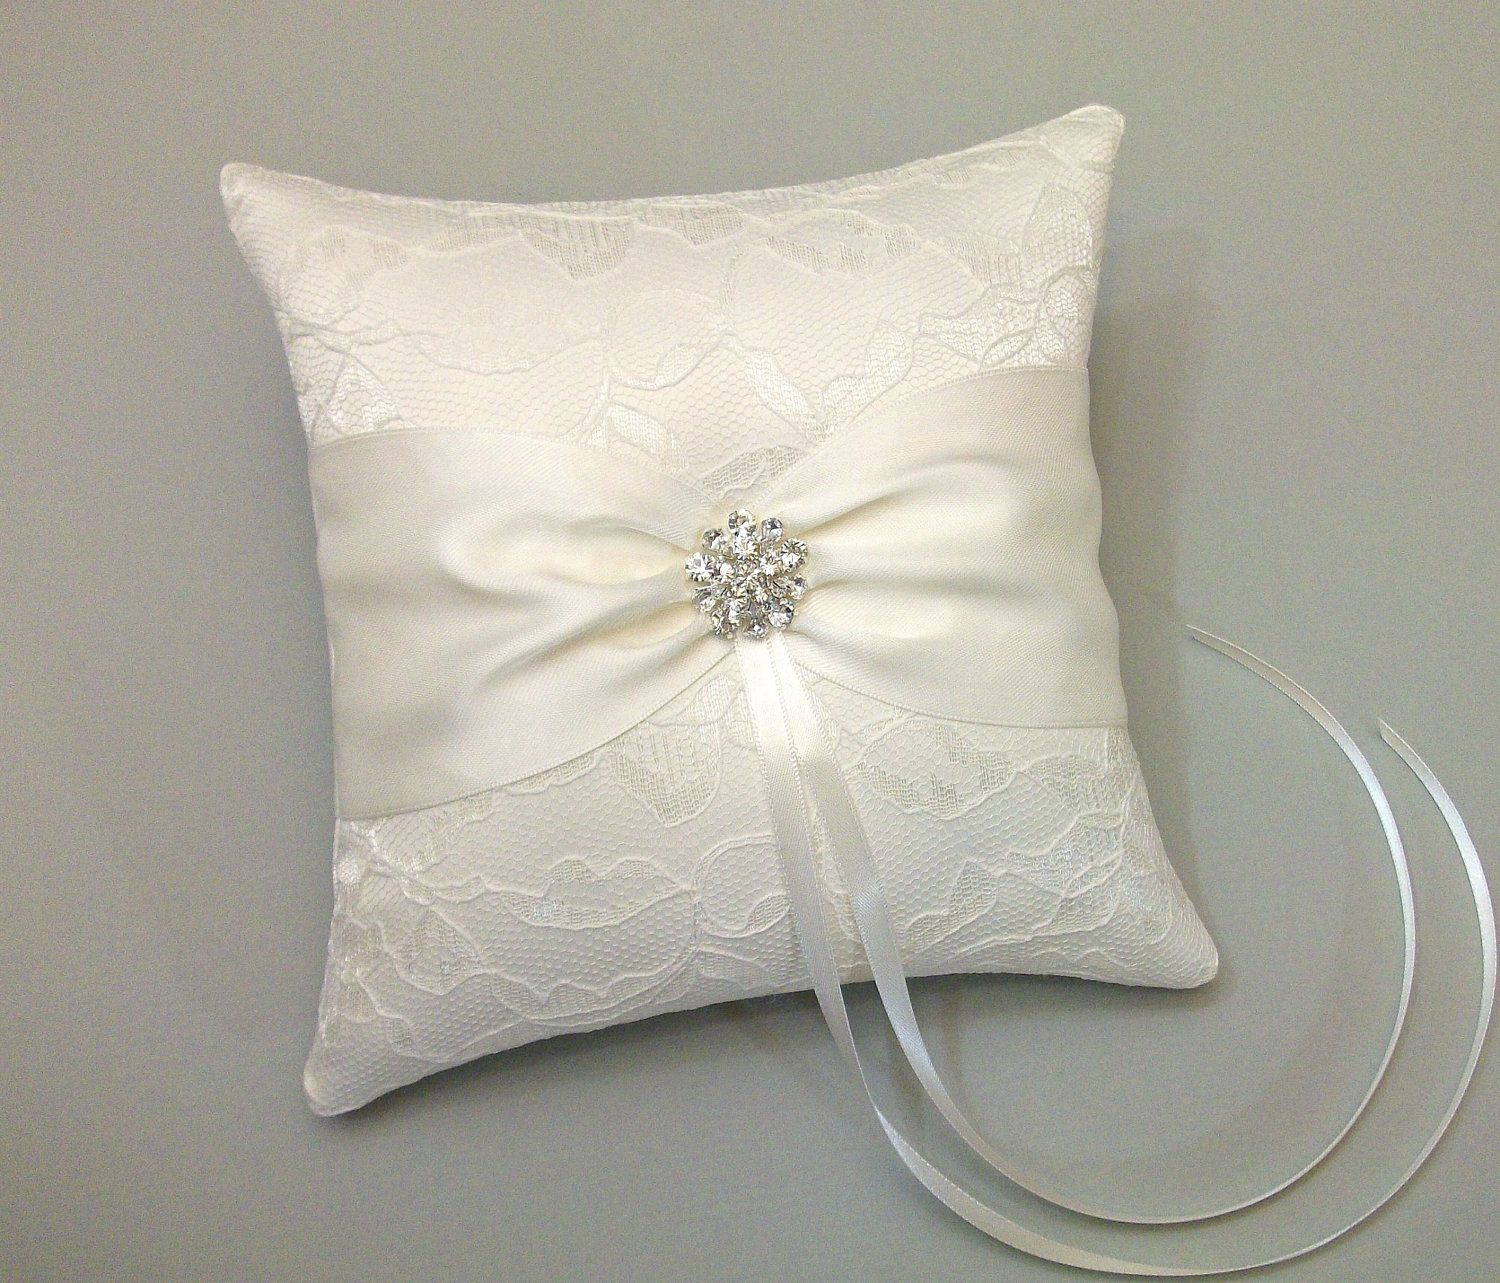 pearl from home aliexpress lace favors sweet bridal decorations com garden pillow on ceremony bearer box beaded in diy satin party item wedding ring